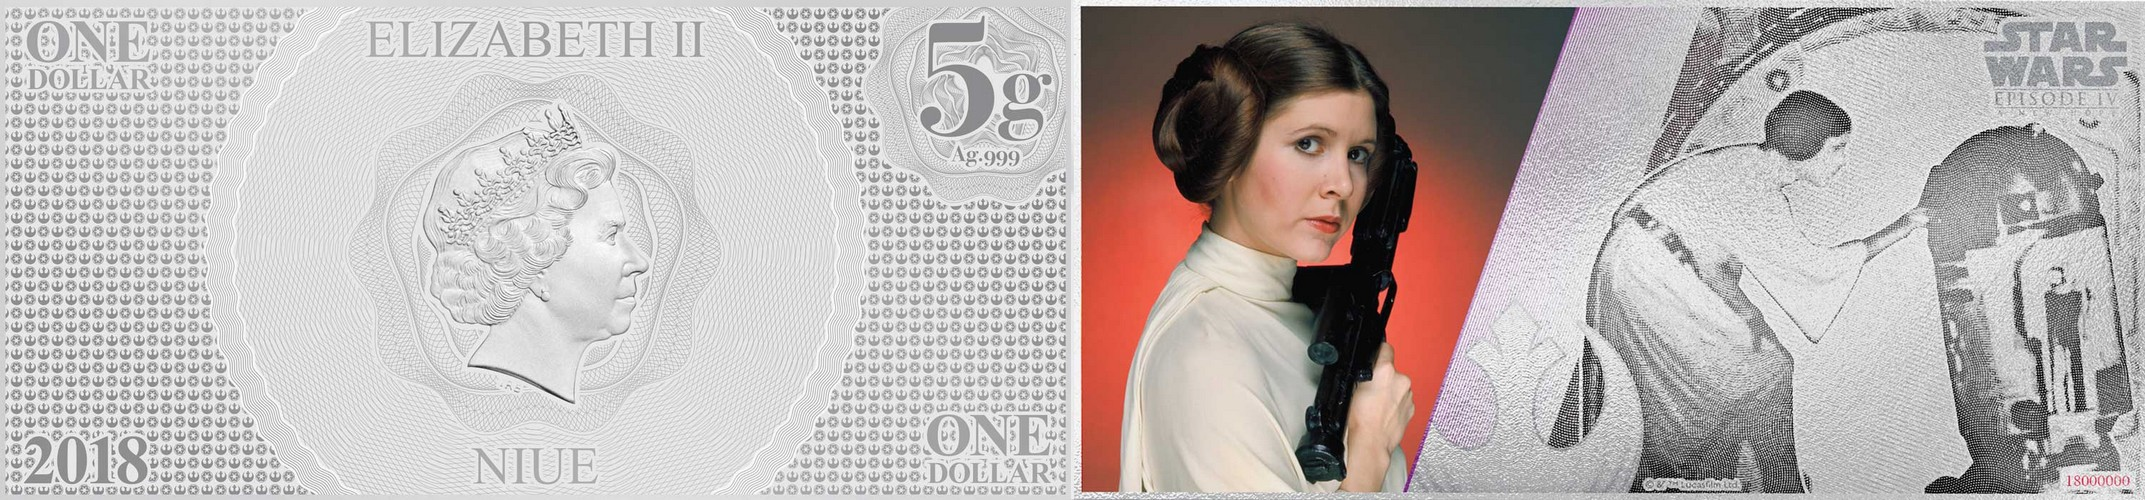 niue 2018 billet star wars princesse leia